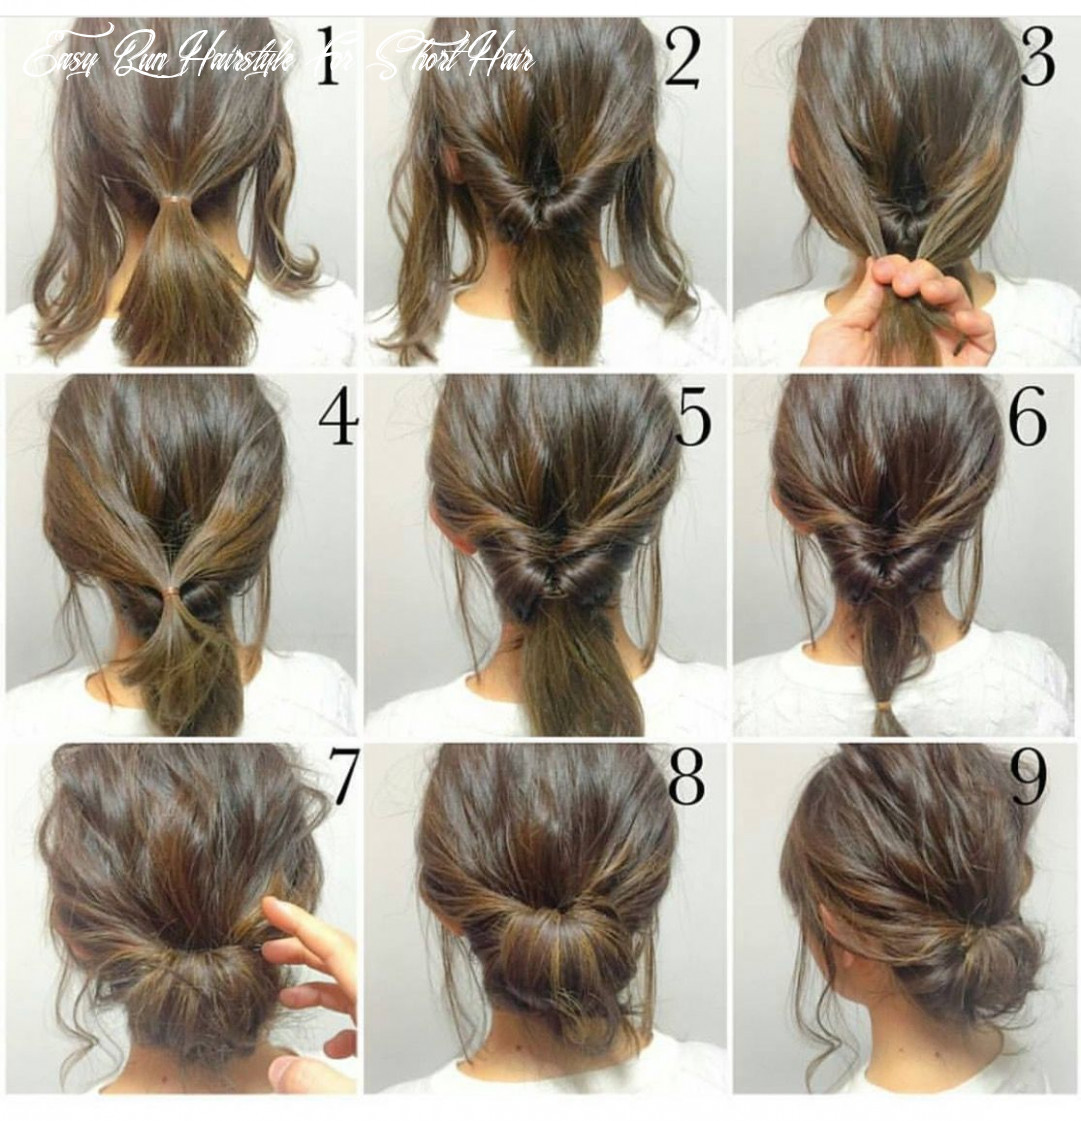 Pin by beth martin on beauty buzz | work hairstyles, short hair